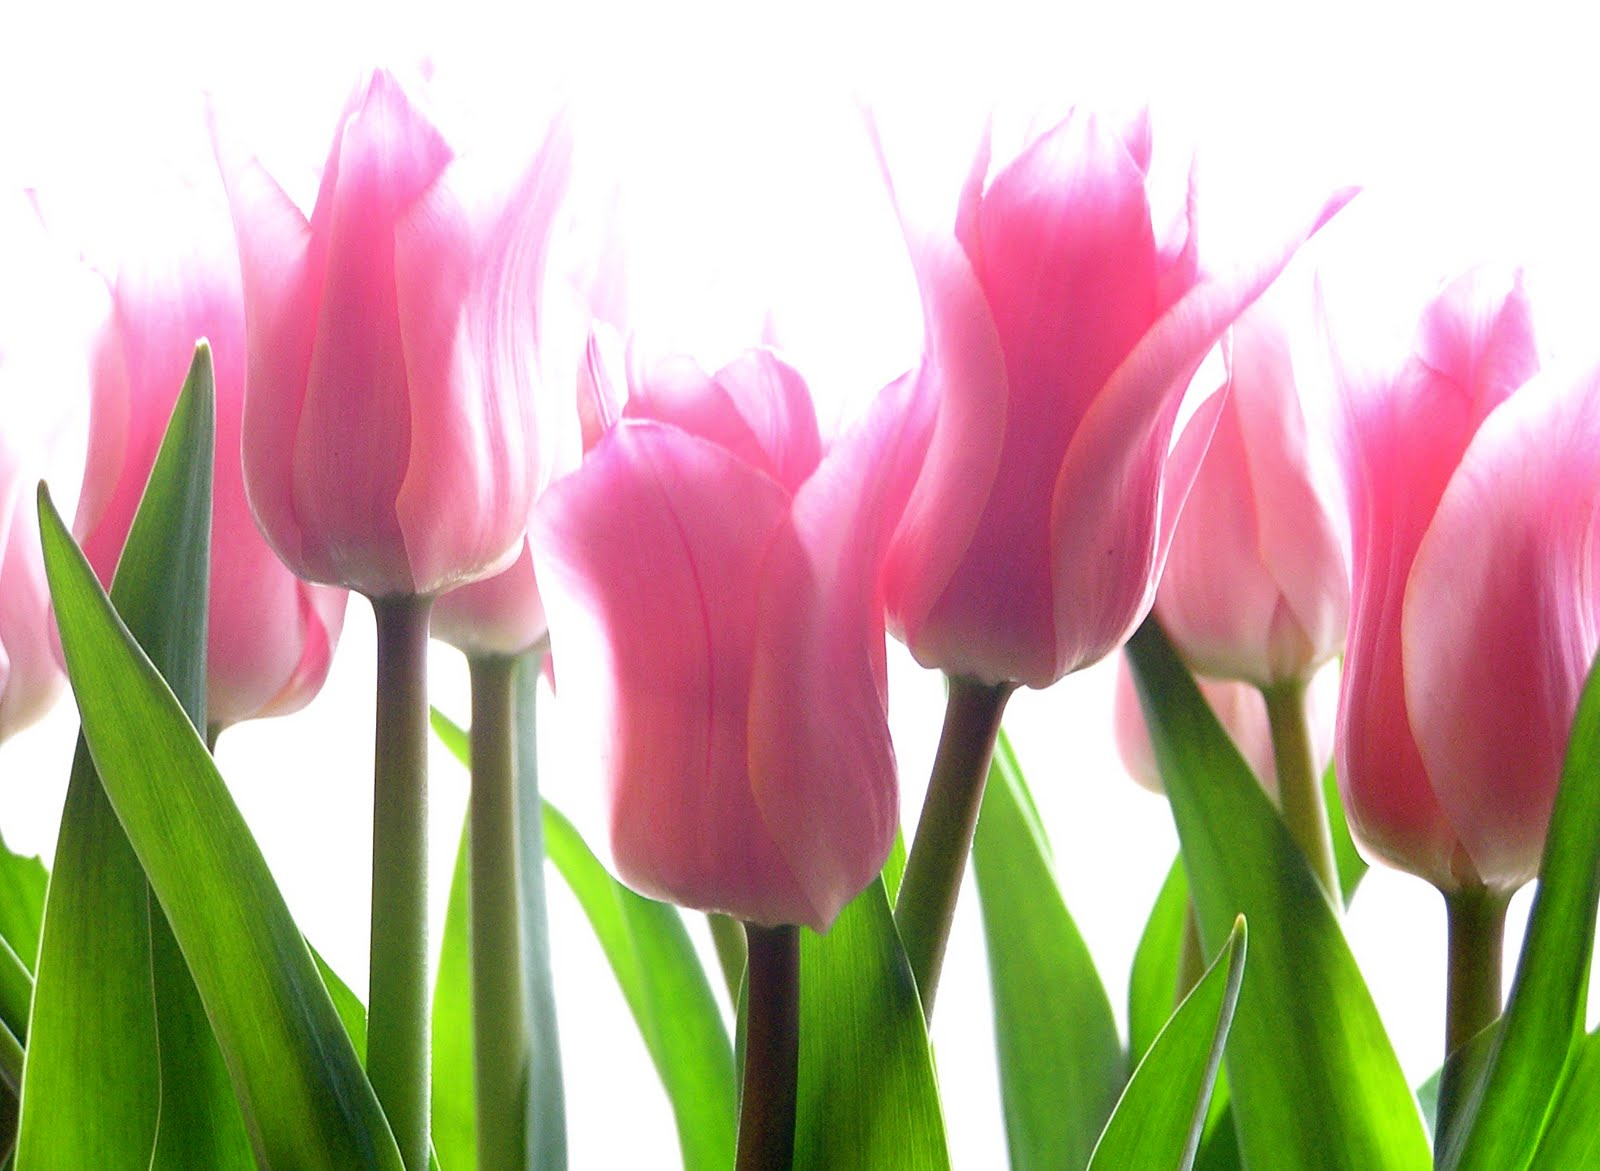 Tulips Flowers wallpapers Tulips images Tulips